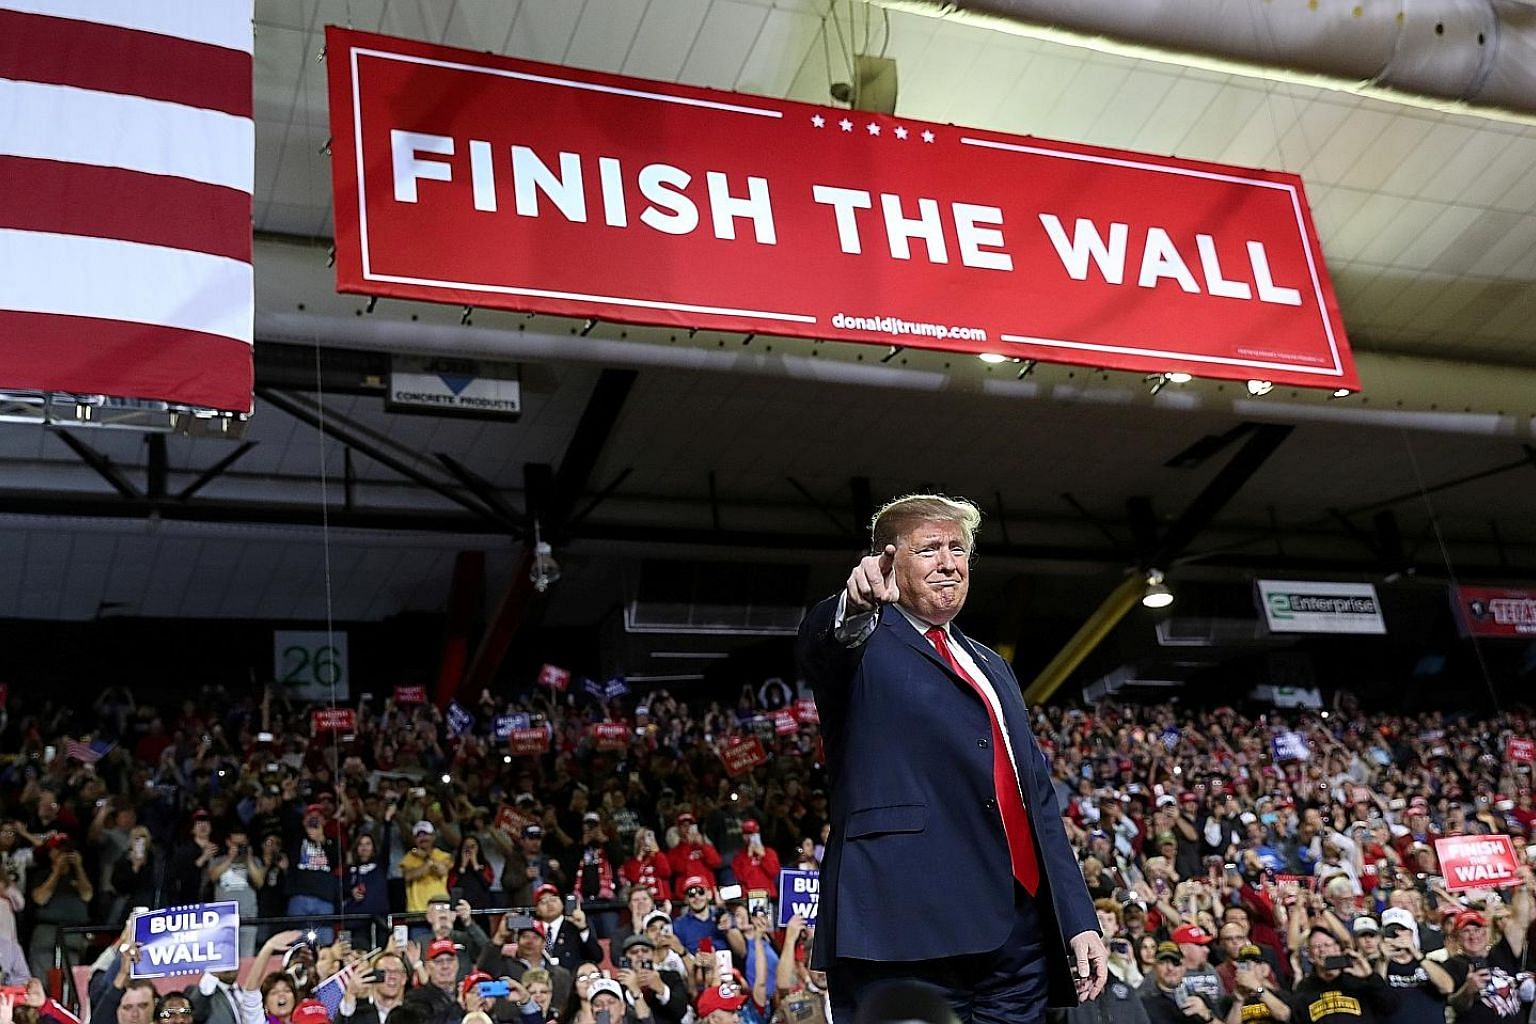 In this file photo from Feb 11 this year, US President Donald Trump speaking at a campaign rally at El Paso County Coliseum in El Paso, Texas. His inflammatory remarks include referring to Mexican immigrants as rapists and drug dealers, while he has